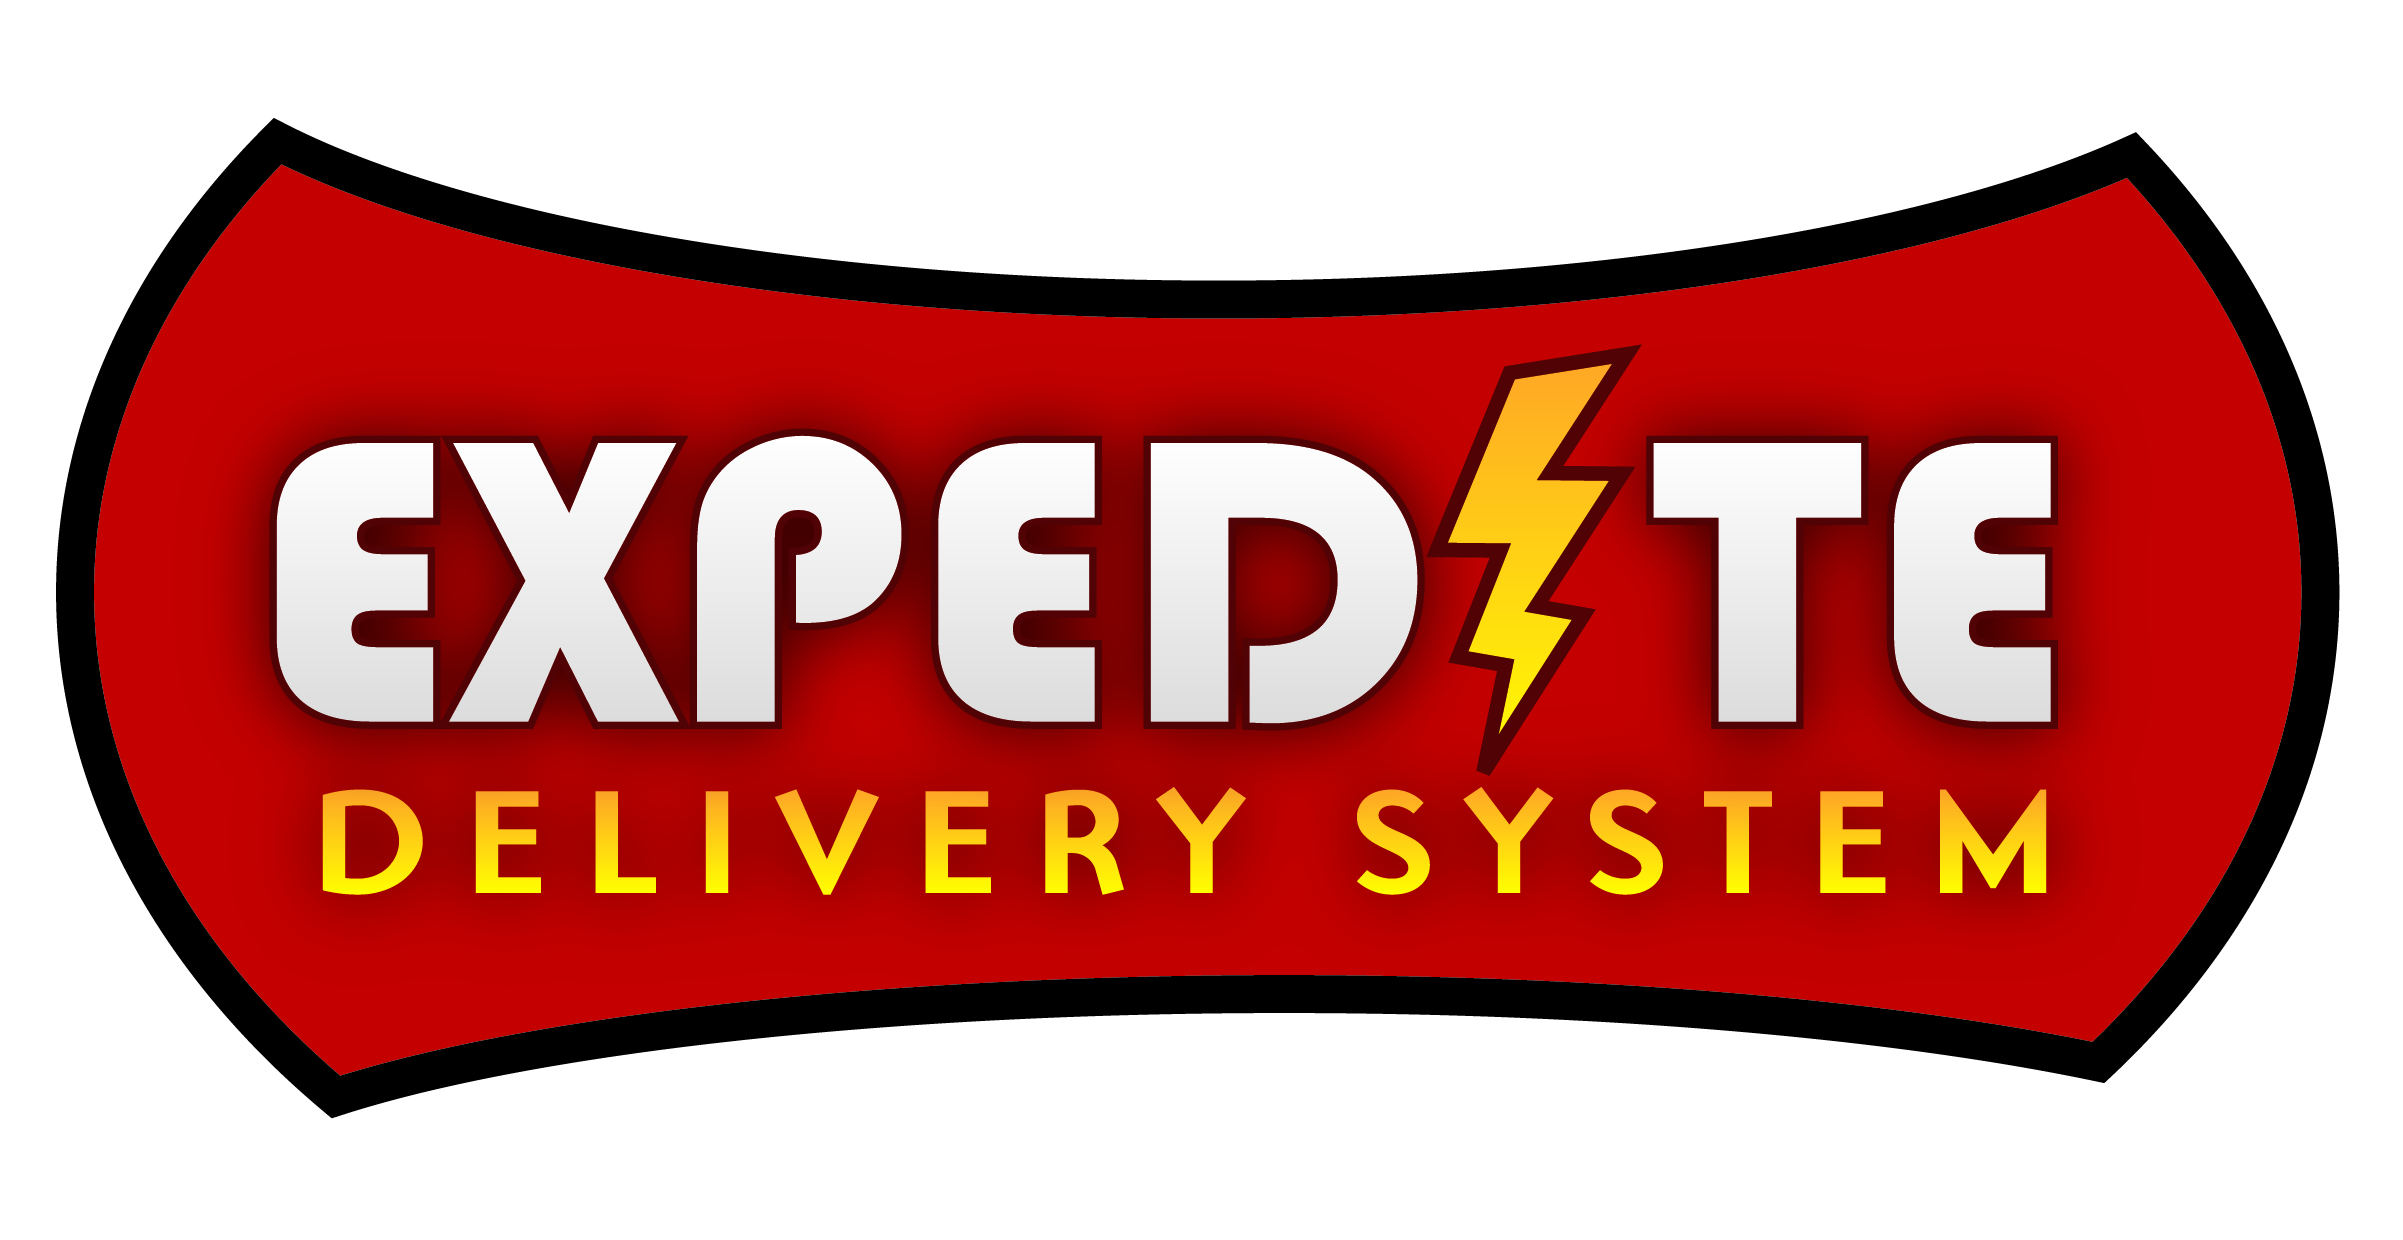 Expedite Delivery System